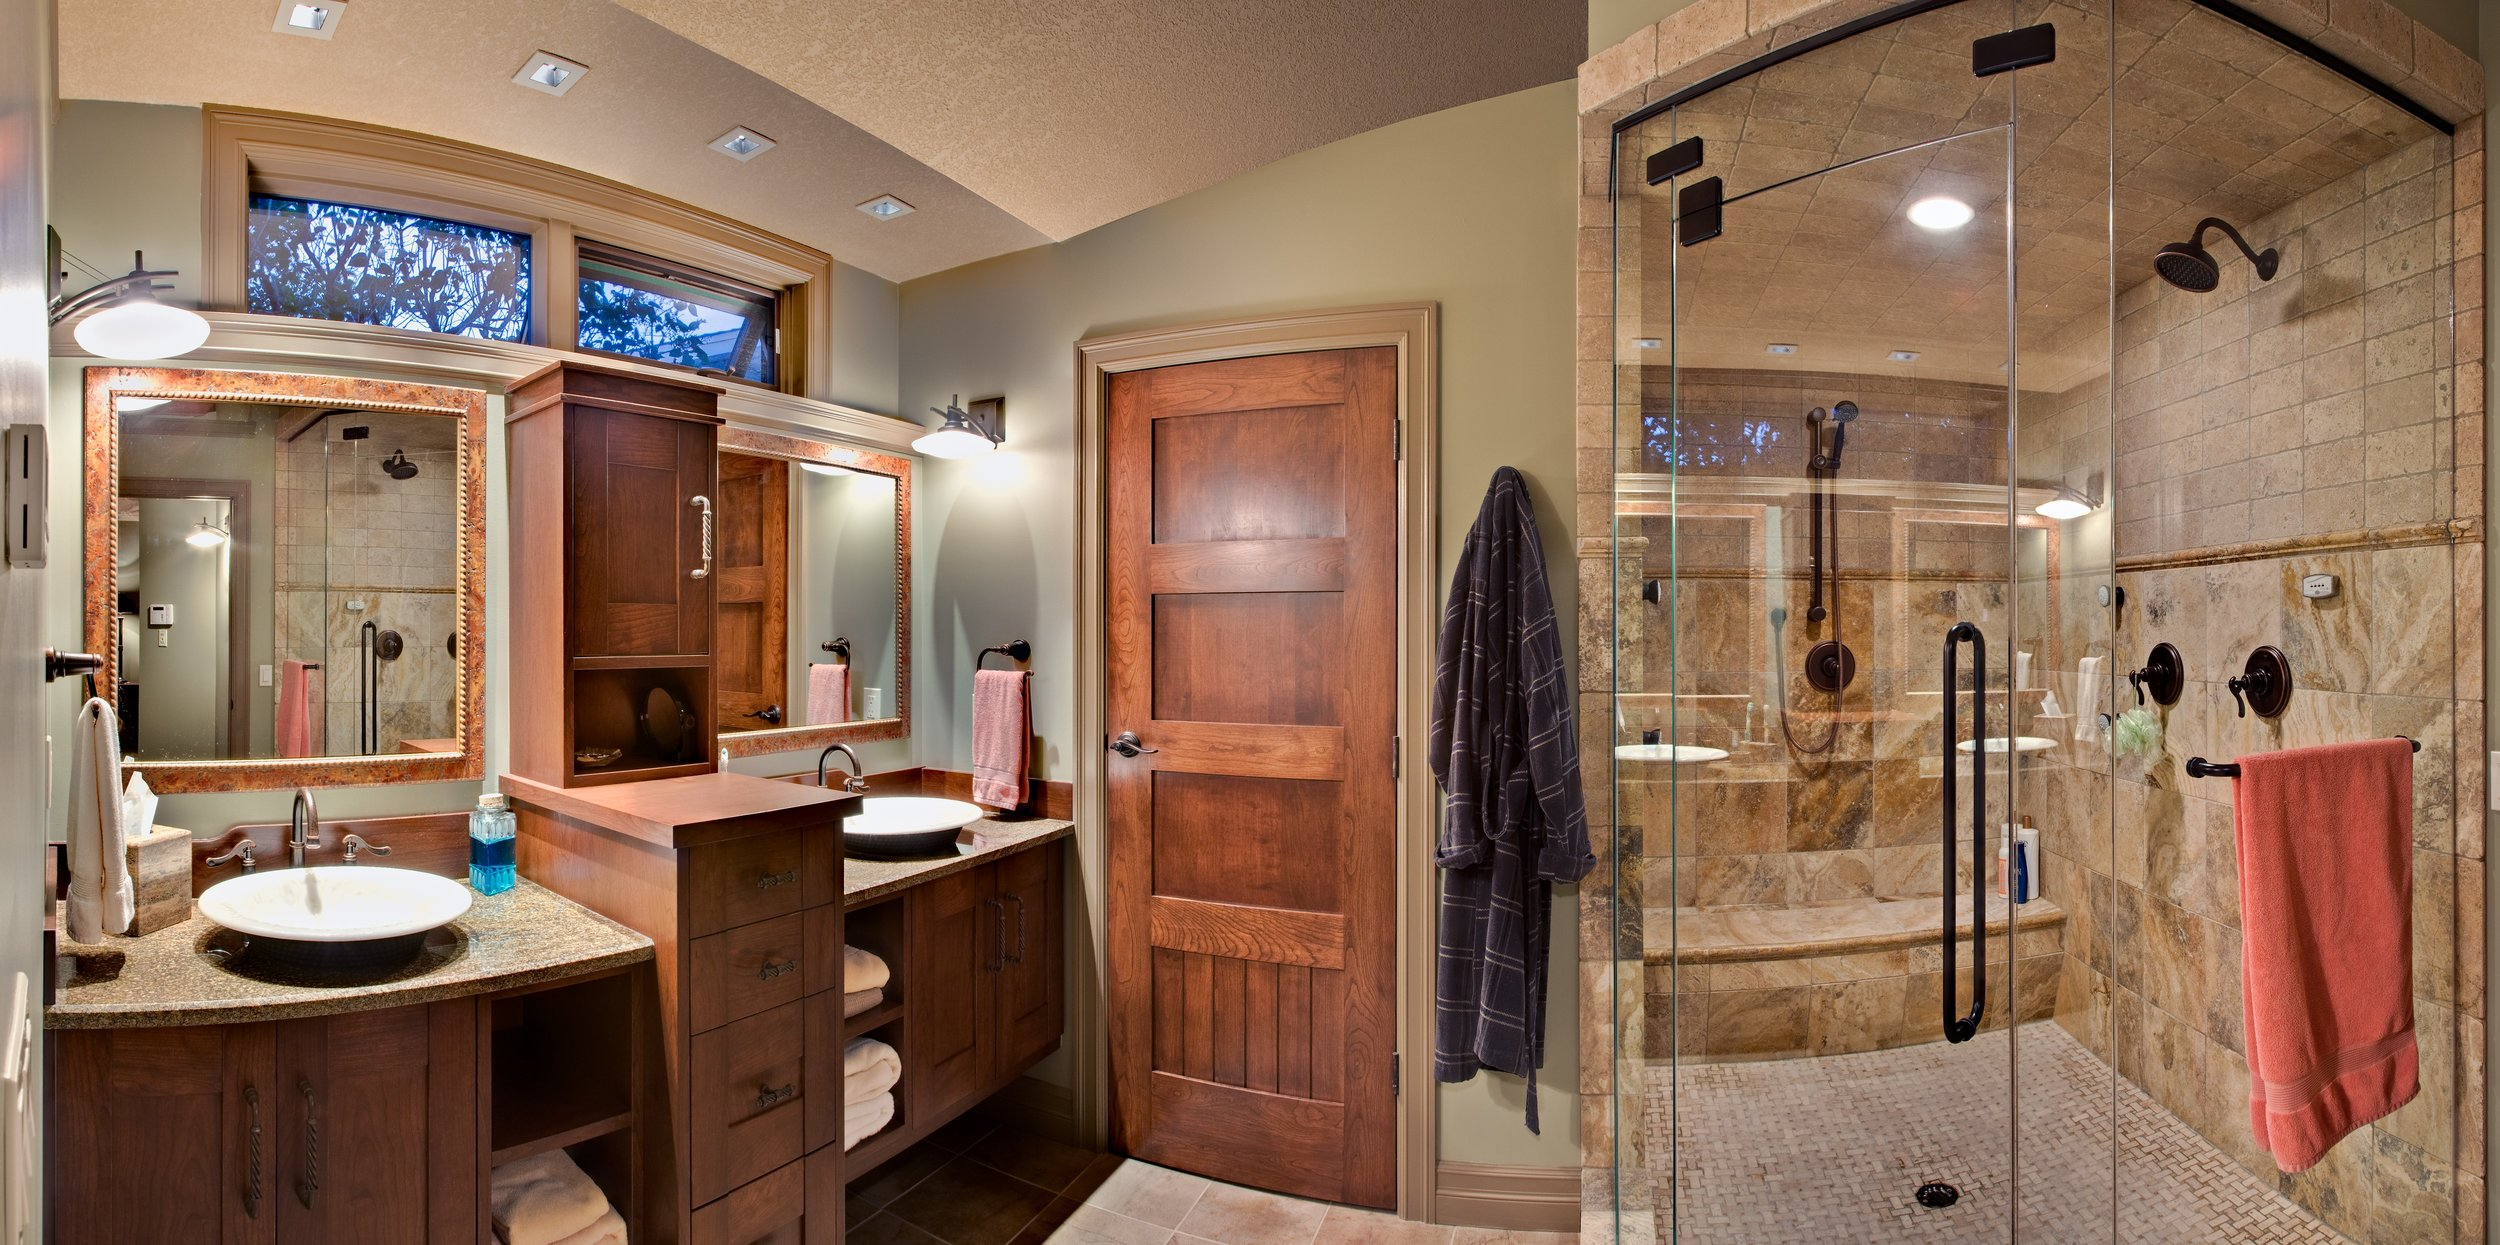 Bathroom Renovation in the Calgary community of North Glenmore Park